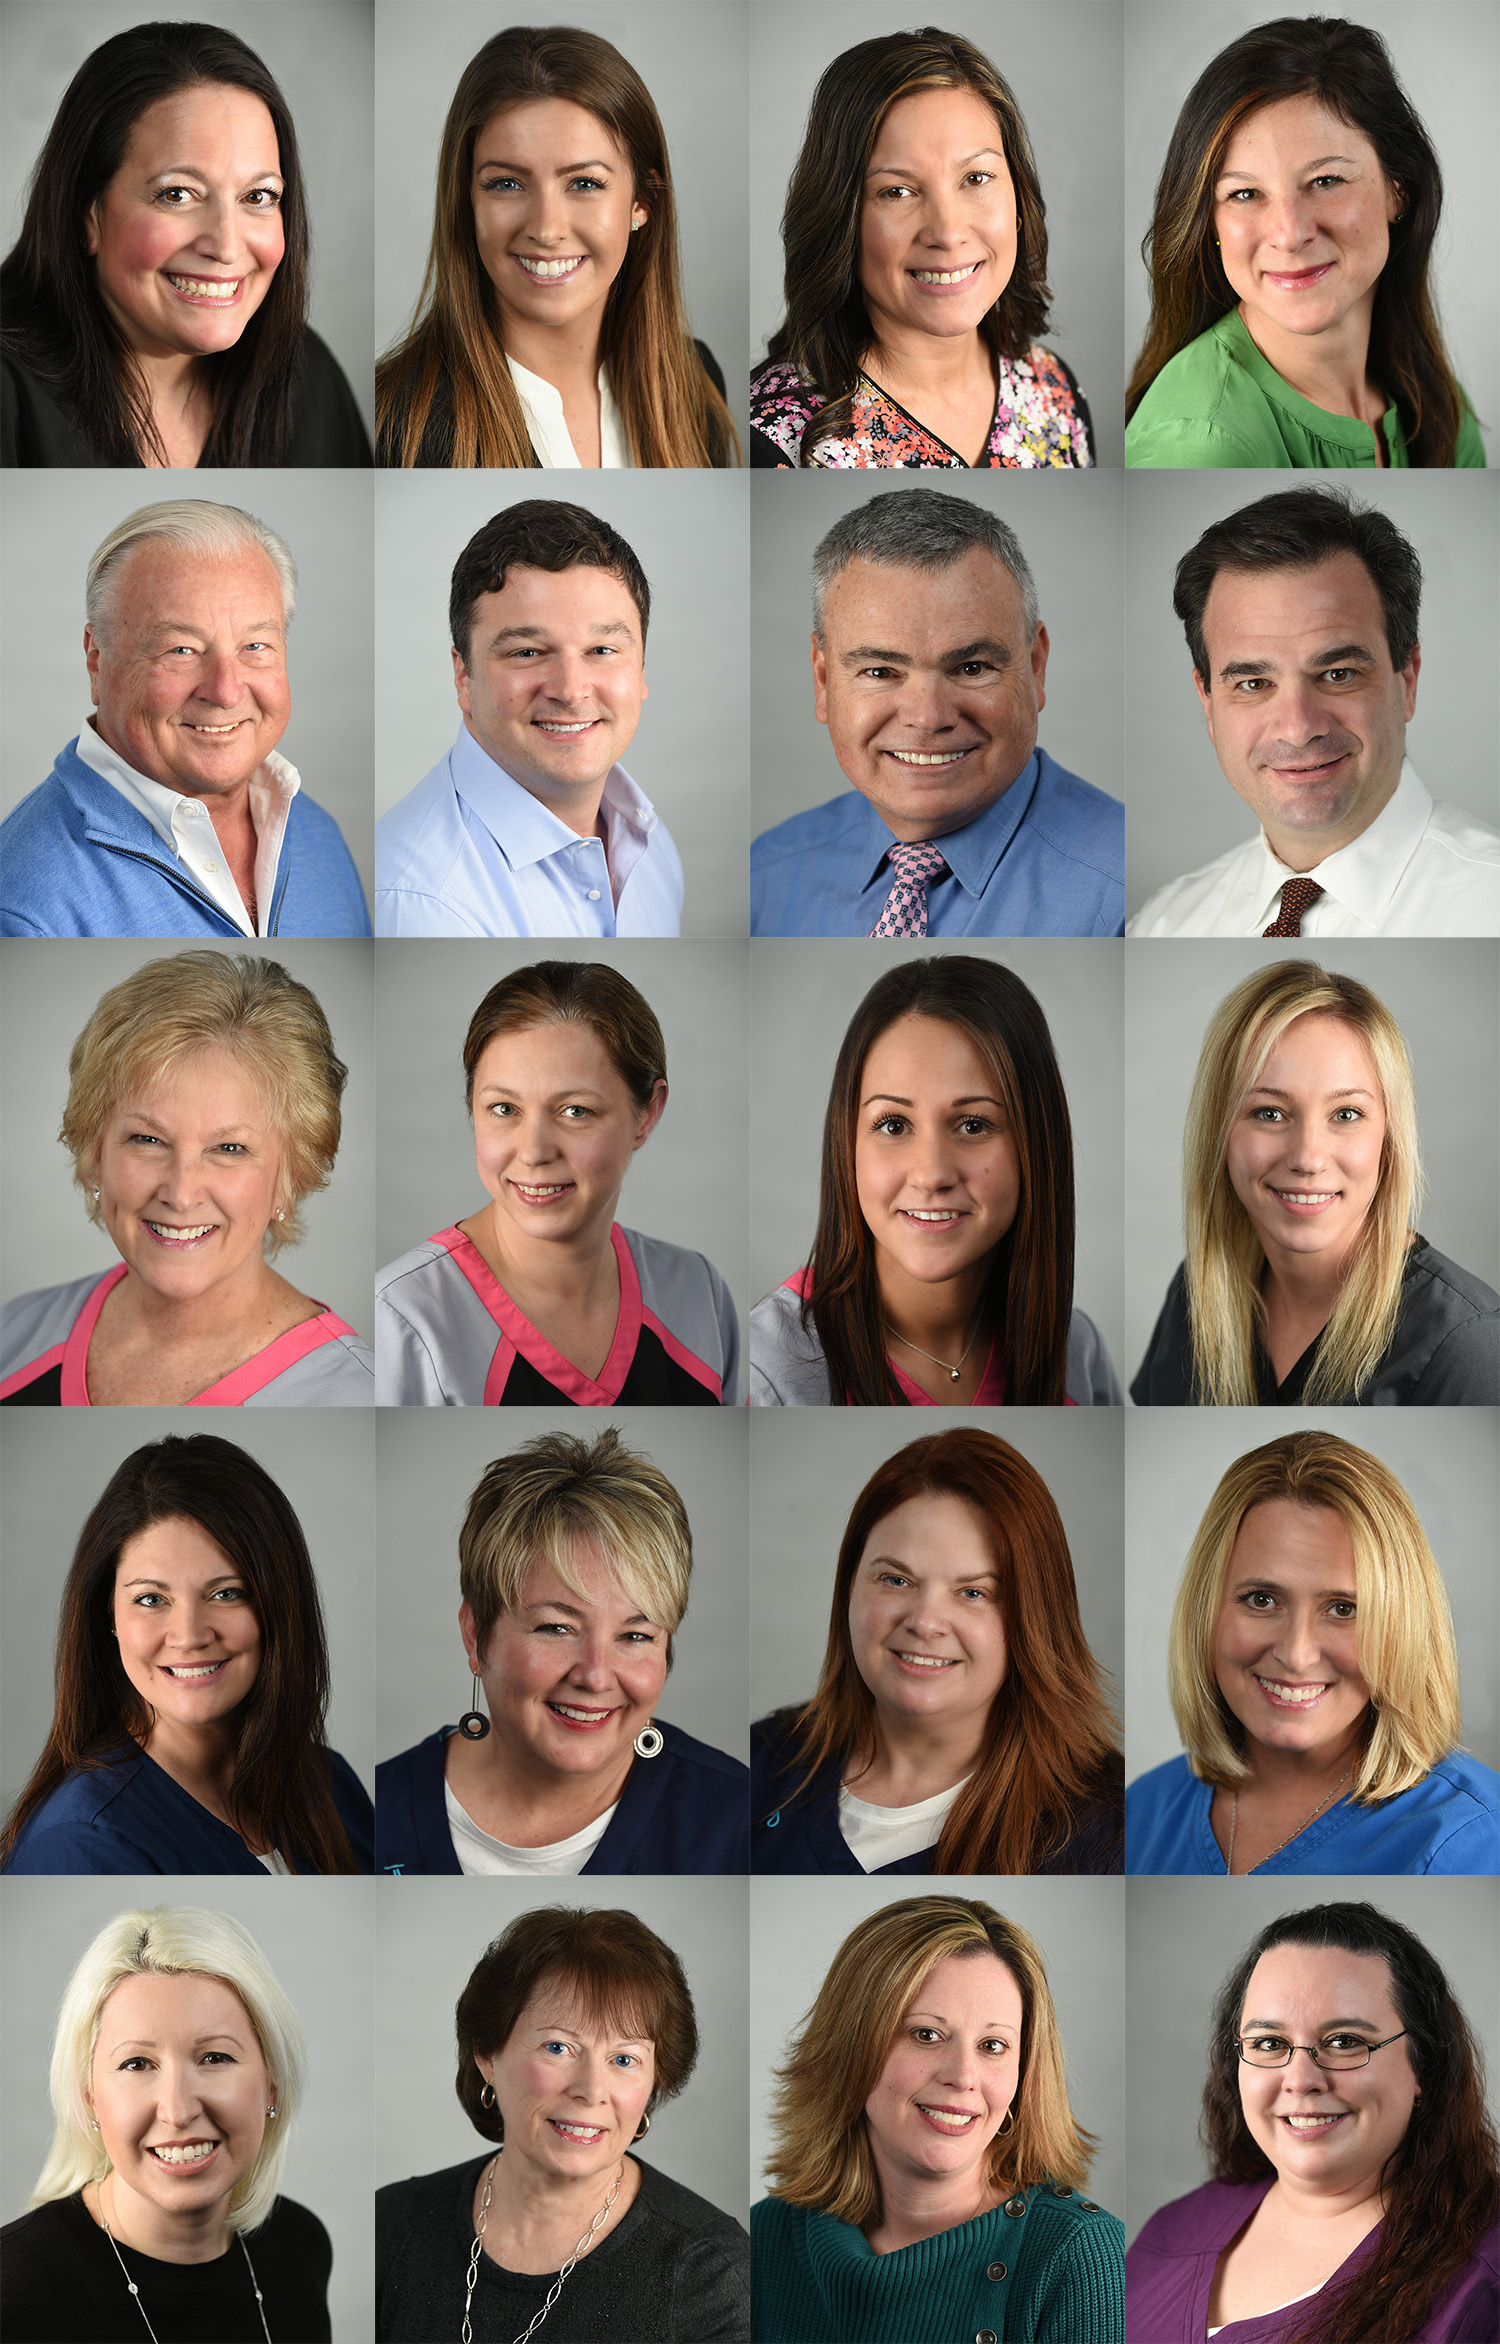 RI Orthodontic Group Business Portrait.jpg